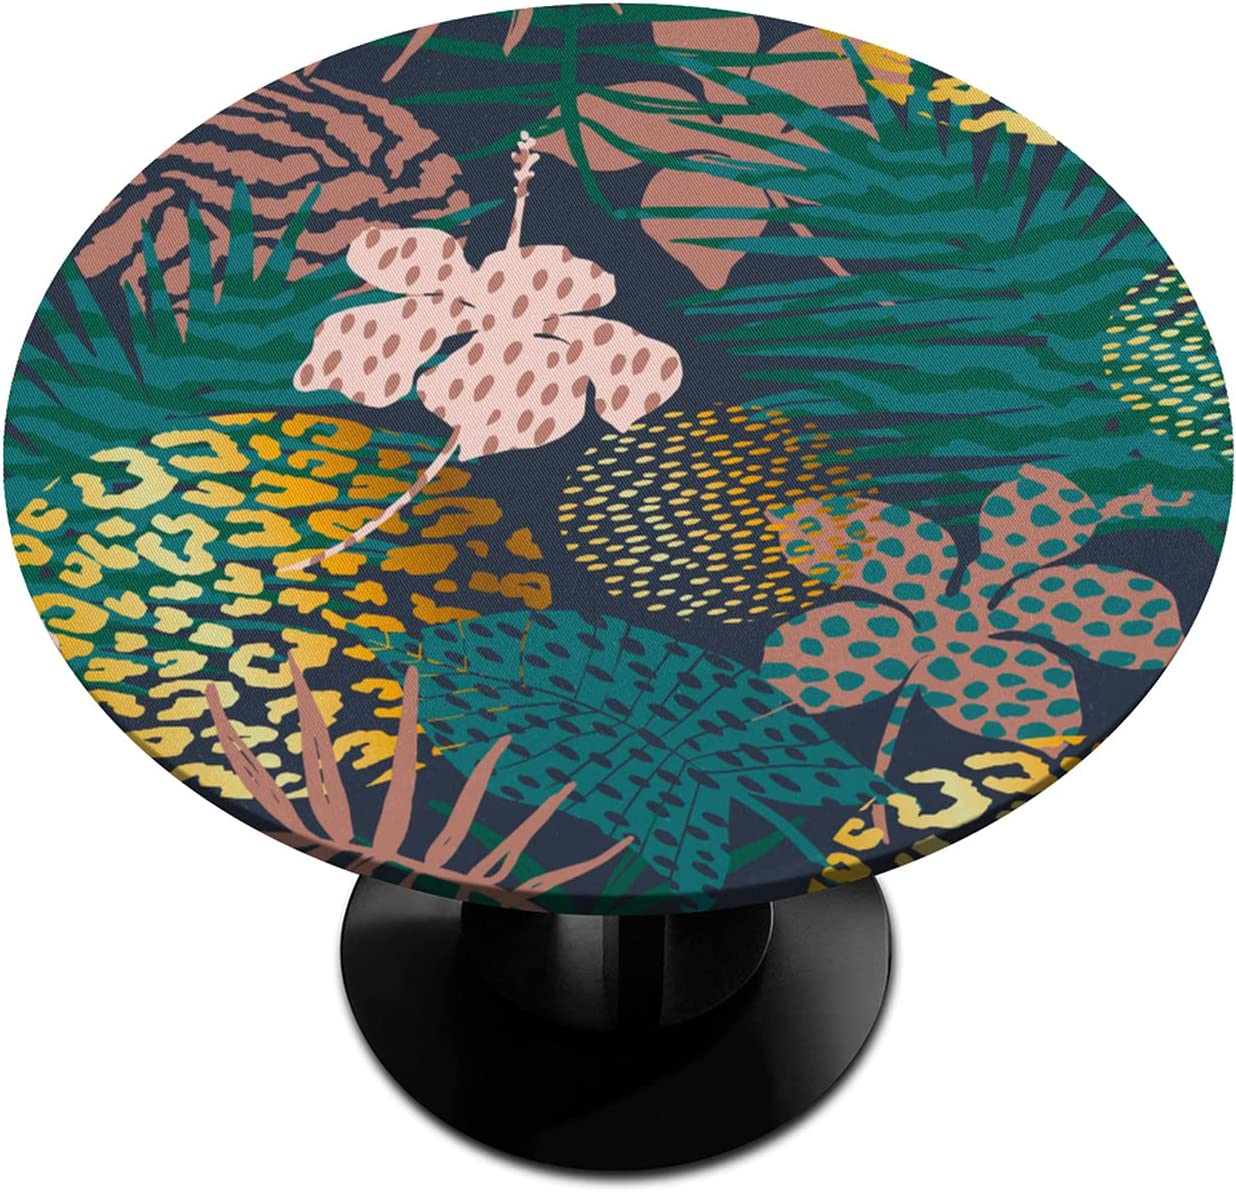 Palm Round Fitted Tablecloths 5% OFF Tablec Max 59% OFF Textures Animal Home